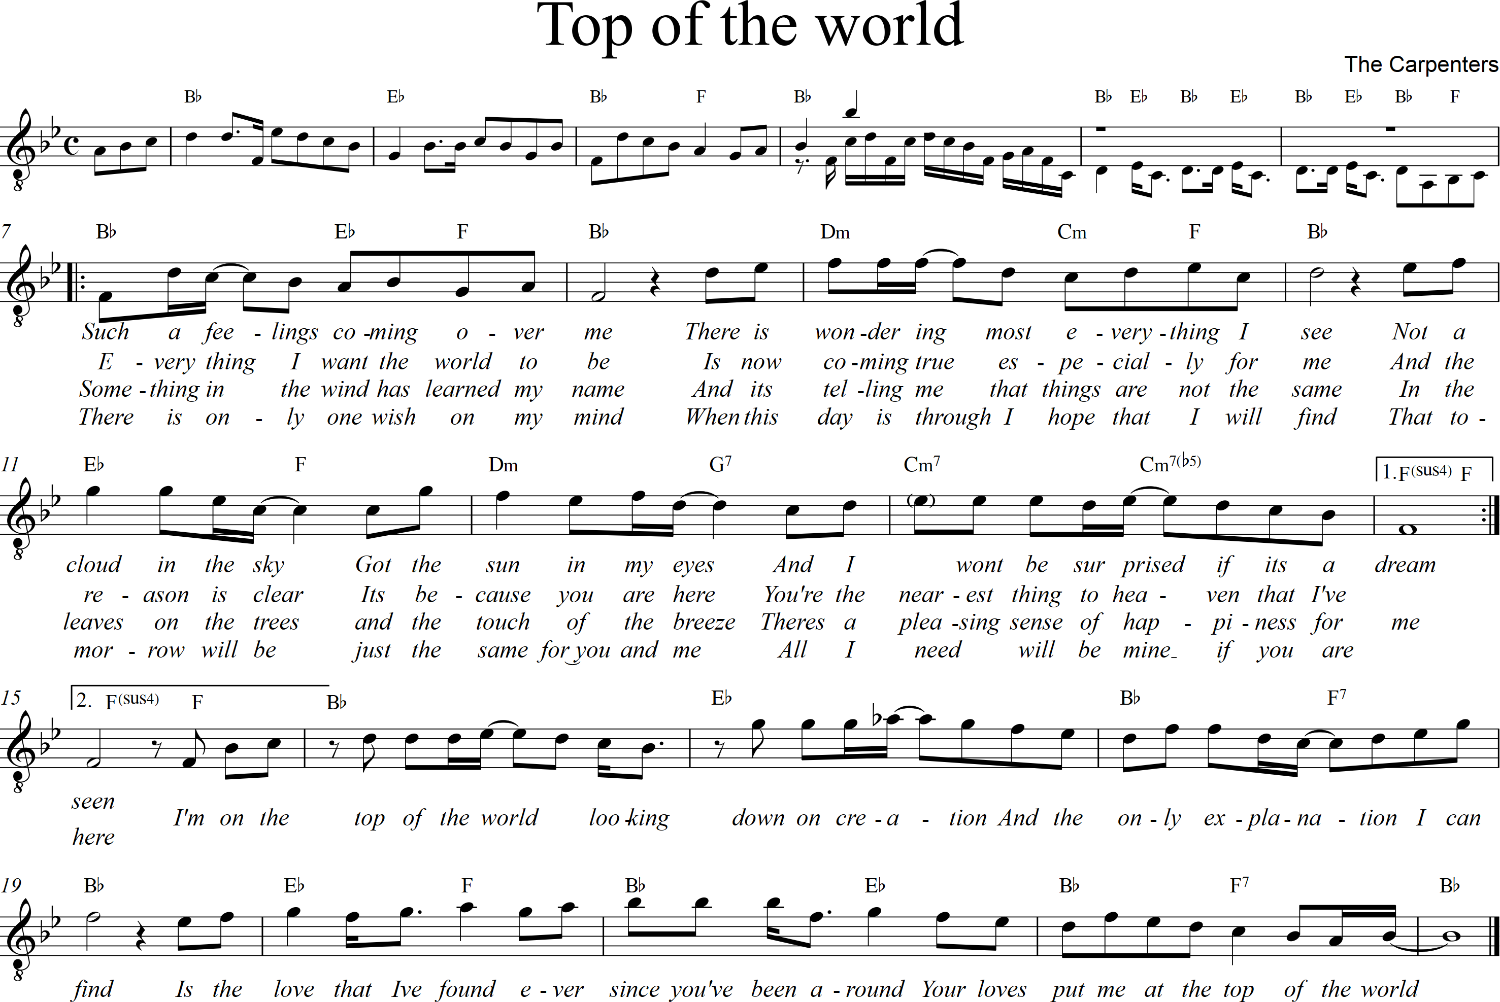 sheet Top of the world – Carpenters